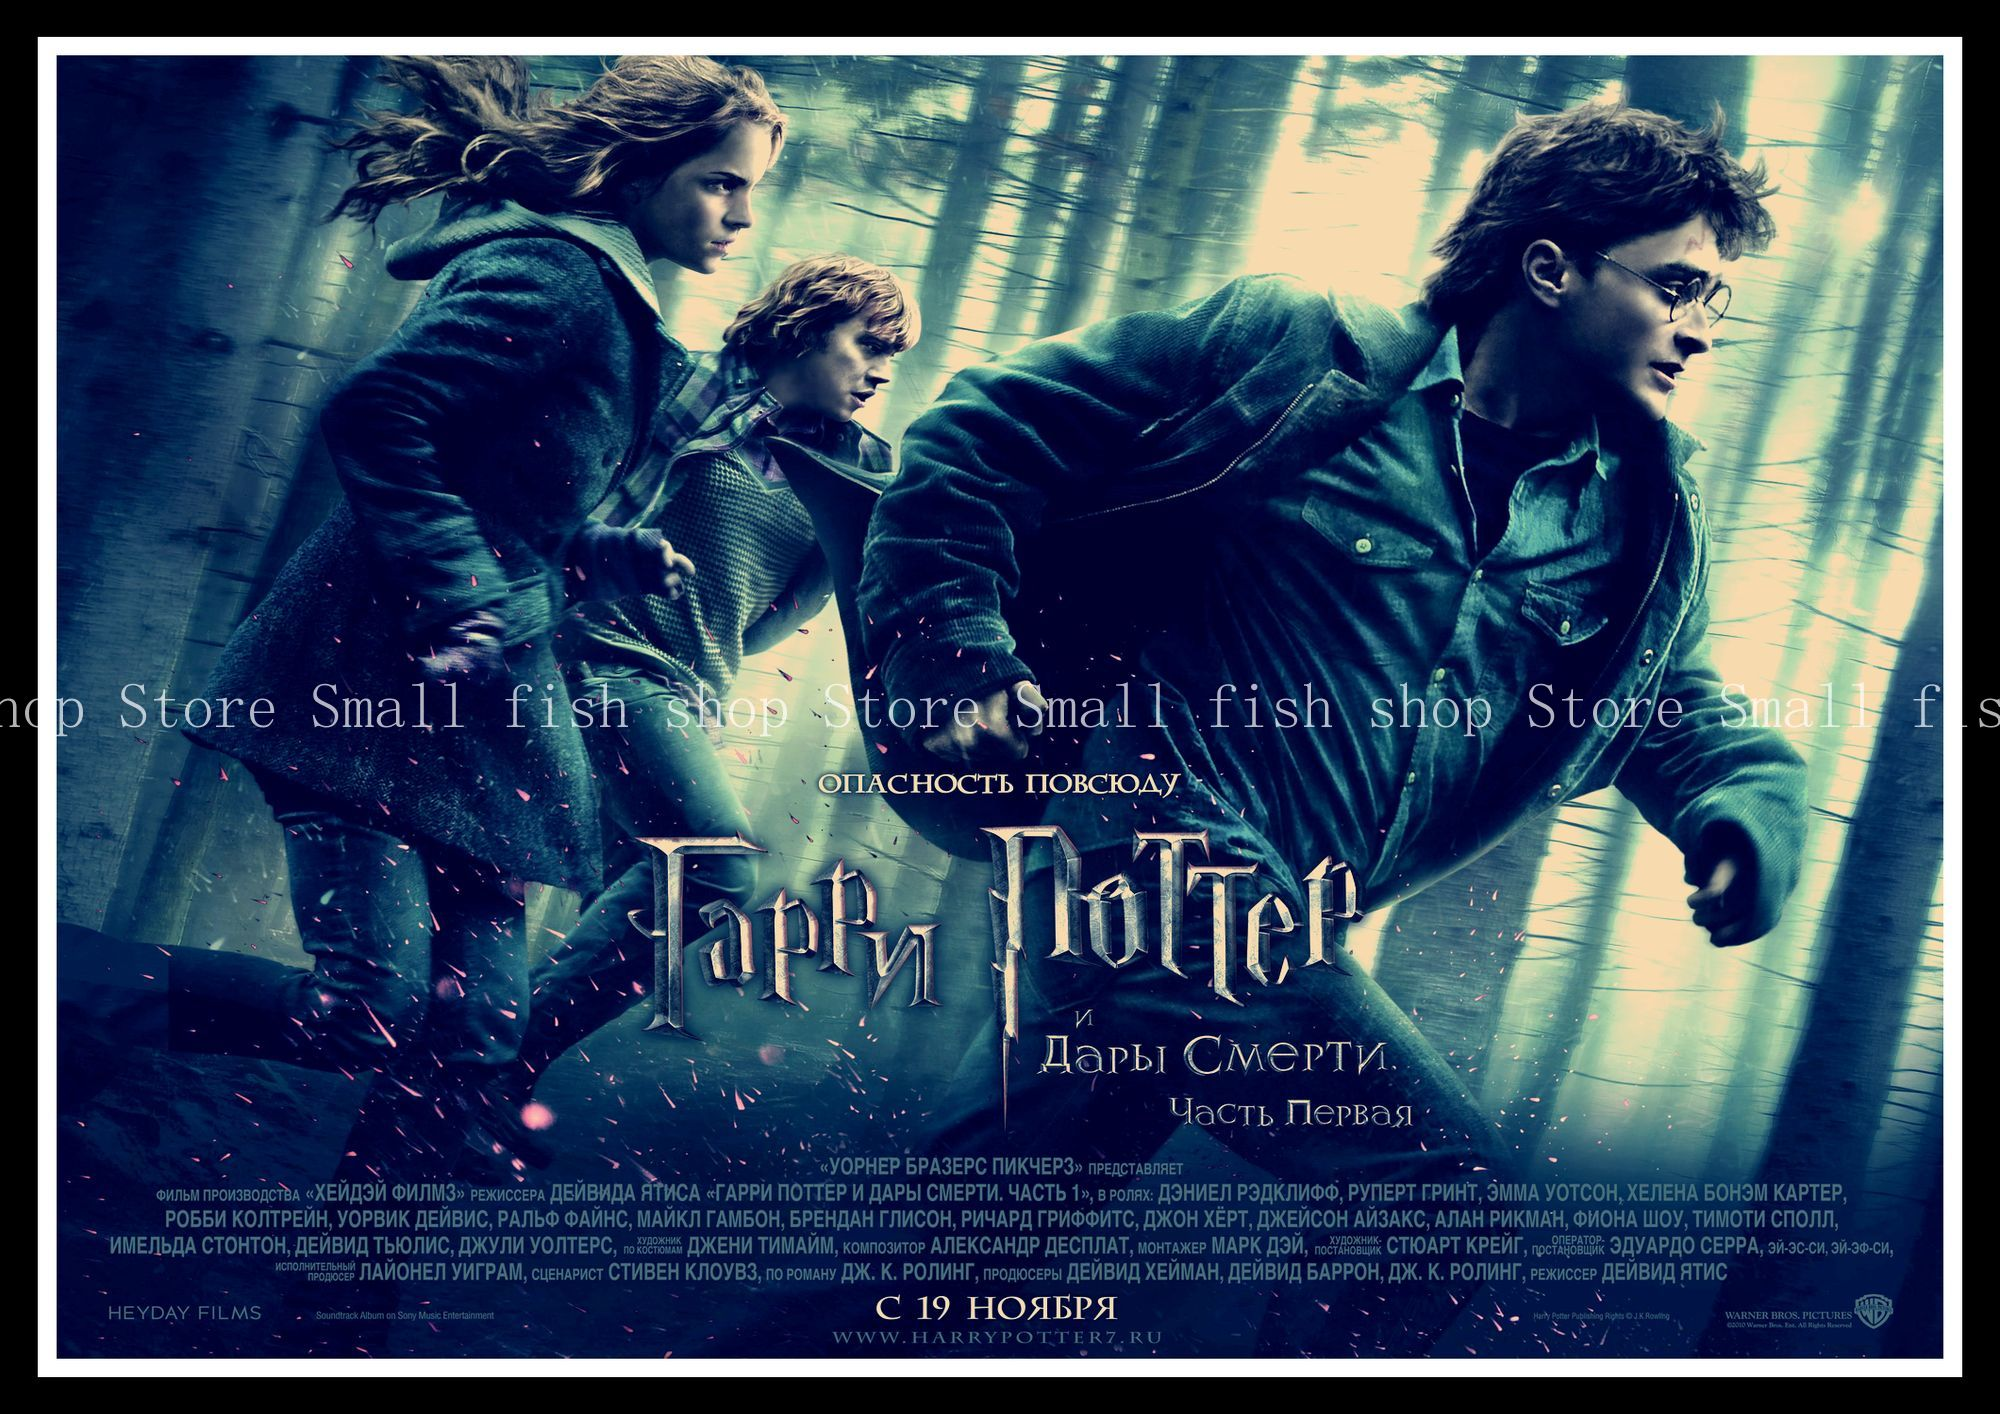 Us 197 18 Offharry Potter And The Deathly Hallows B Home Furnishing Decoration Kraft Movie Poster Drawing Core Wall Stickers 4230 Cm In Wall